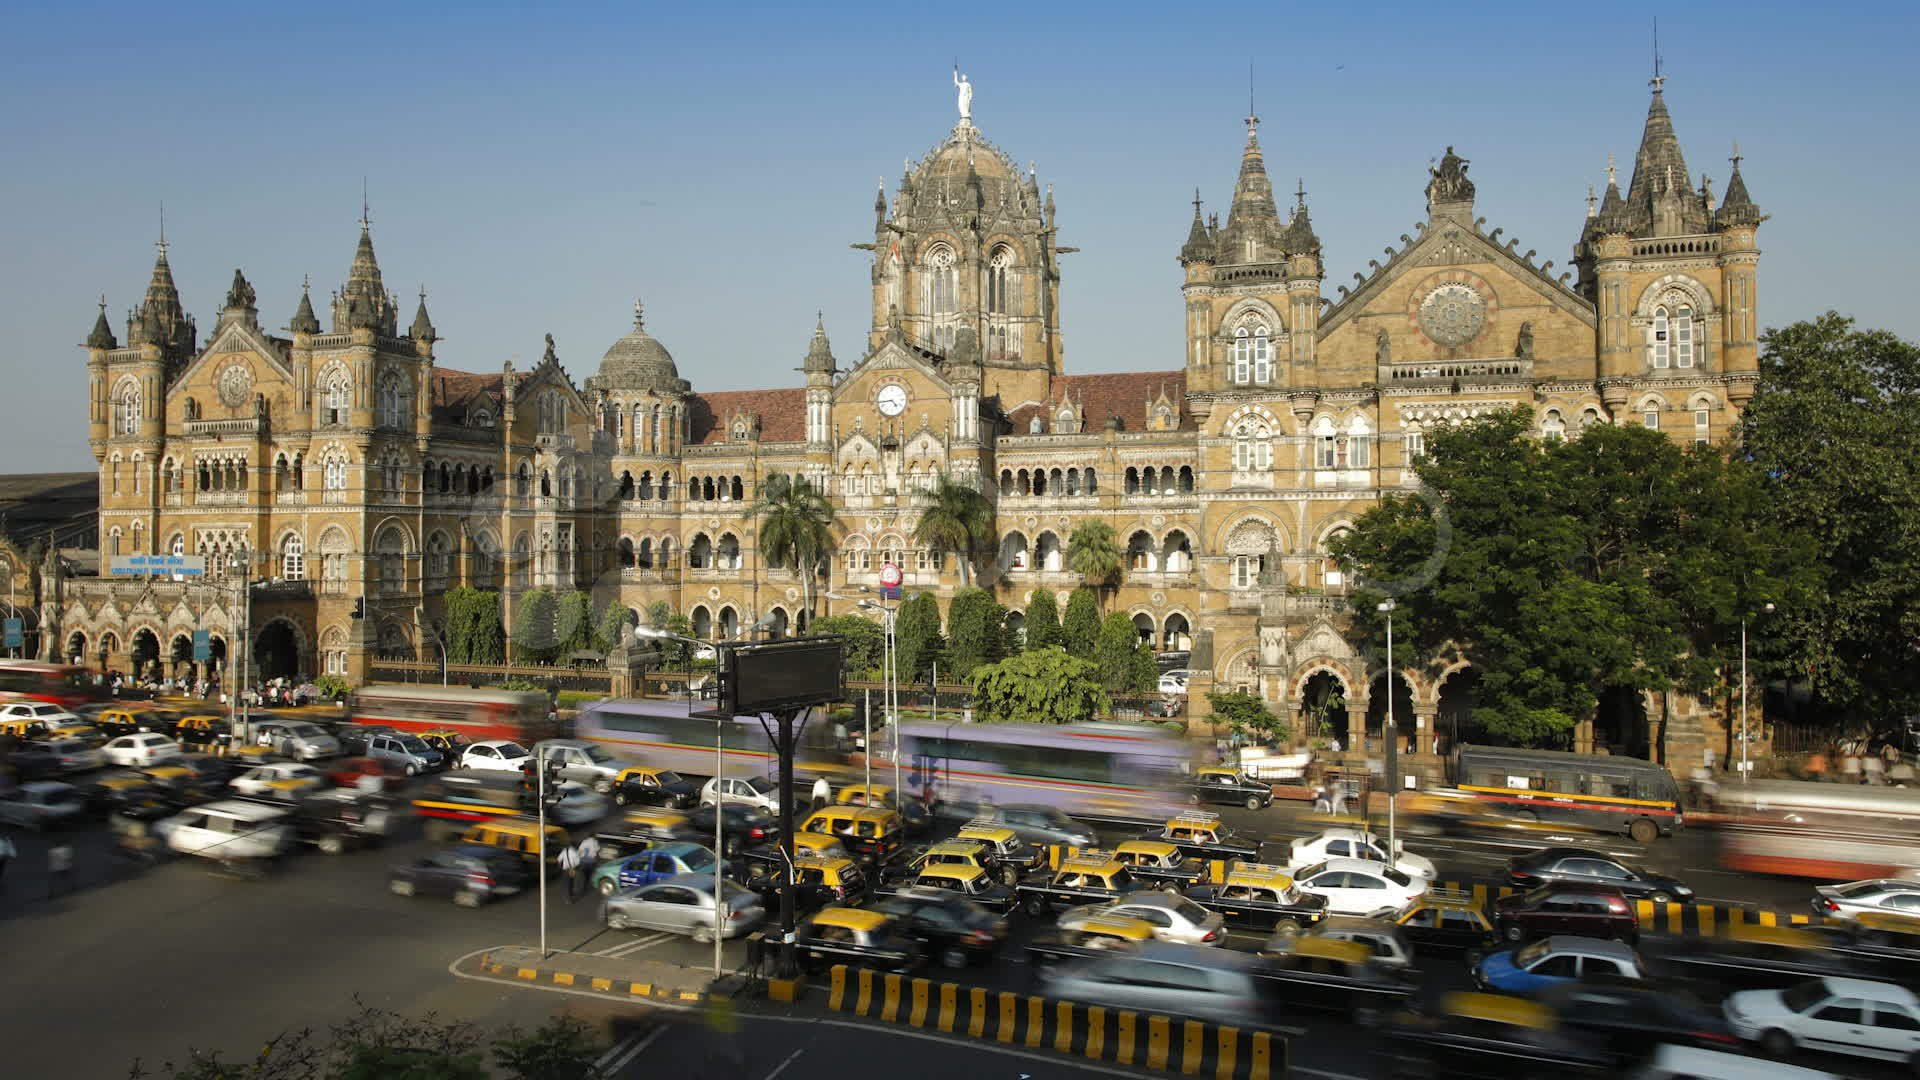 Shivaji Palace in Mumbai wallpapers and image